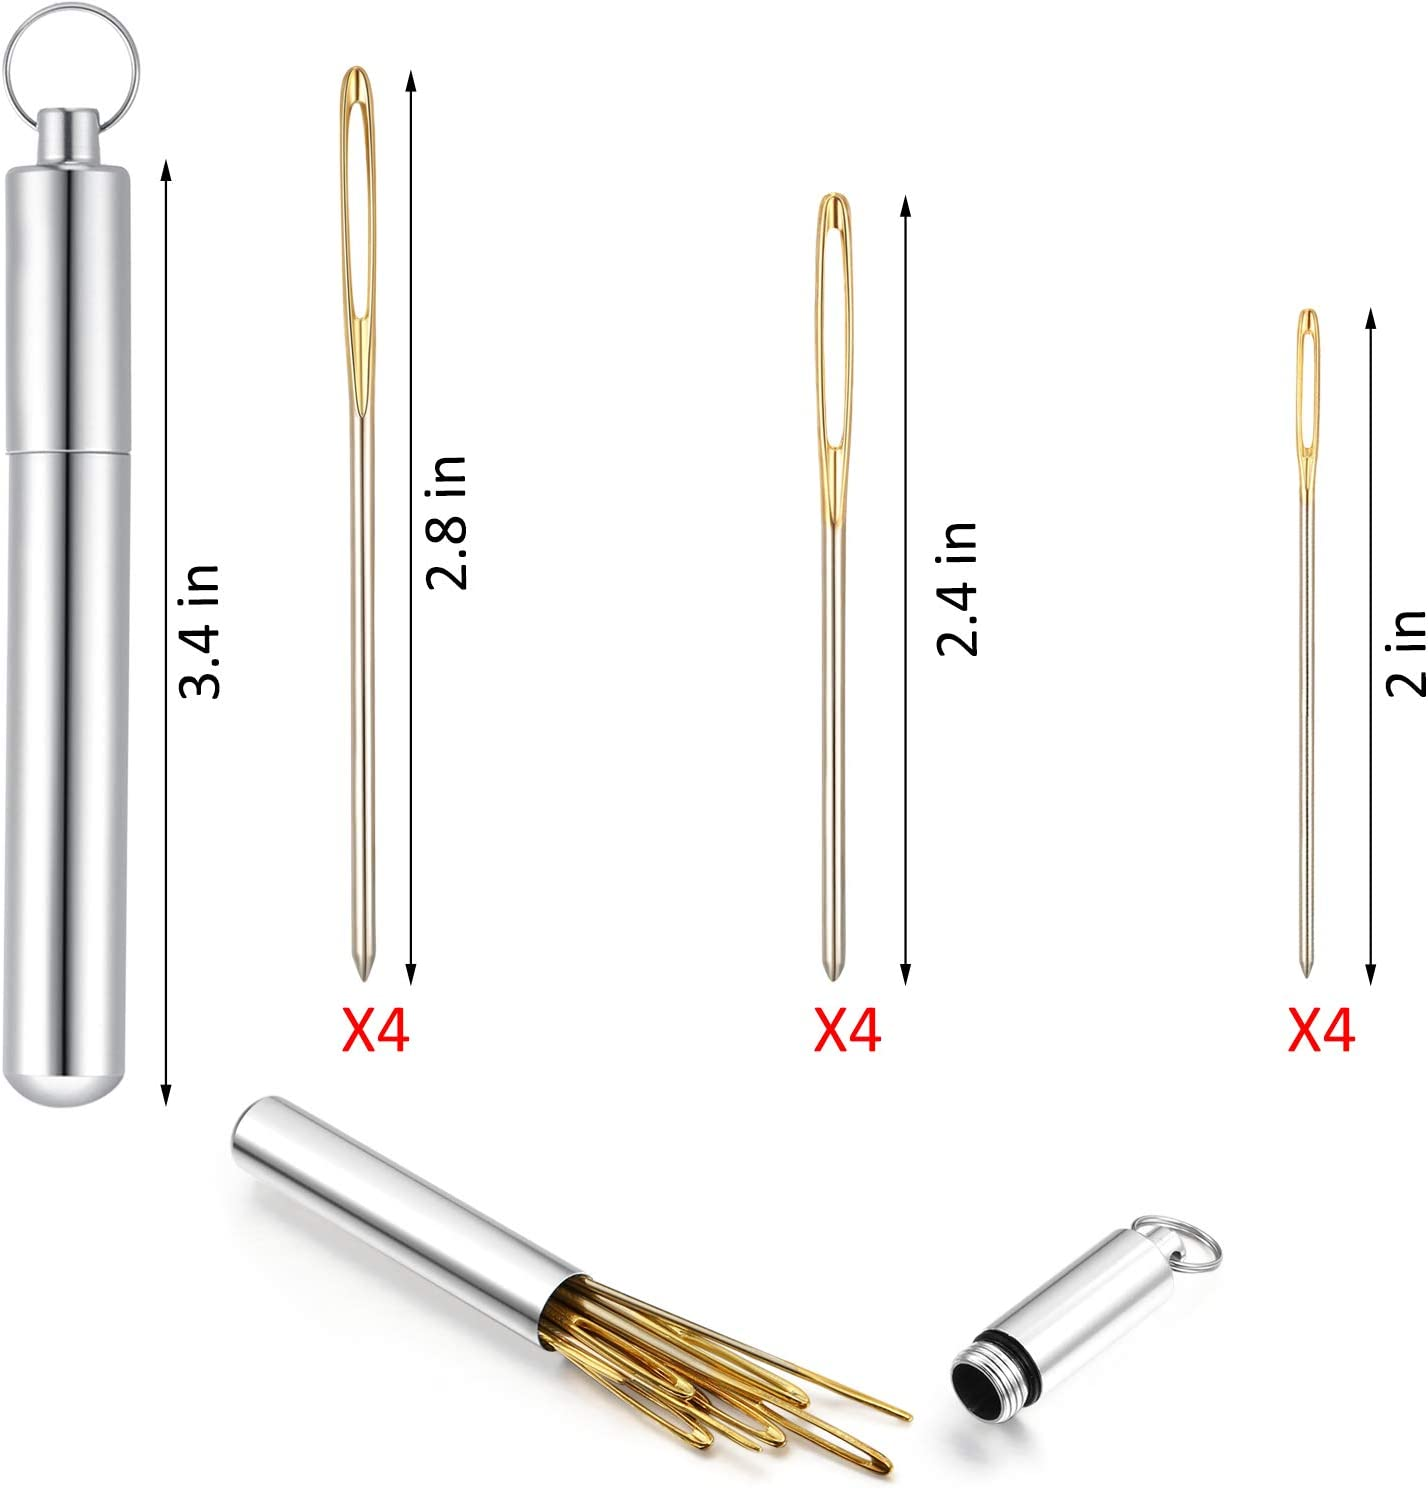 12 Pieces Large Eye Blunt Sewing Needles Tapestry Stainless Steel Yarn Knitting Needles Embroidery Hand Sewing Needles with Aluminum Needle Storage Tube